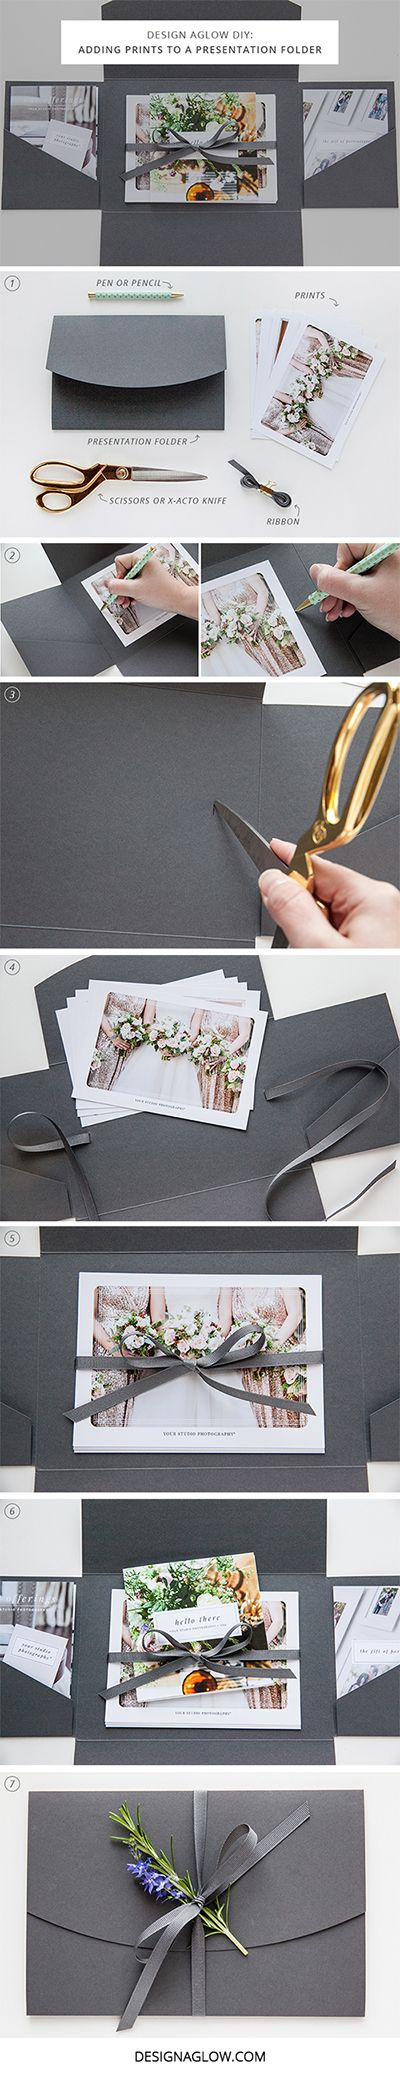 Photography Packaging Inspiration: Adding Prints to a Presentation Folder DIY #designaglow